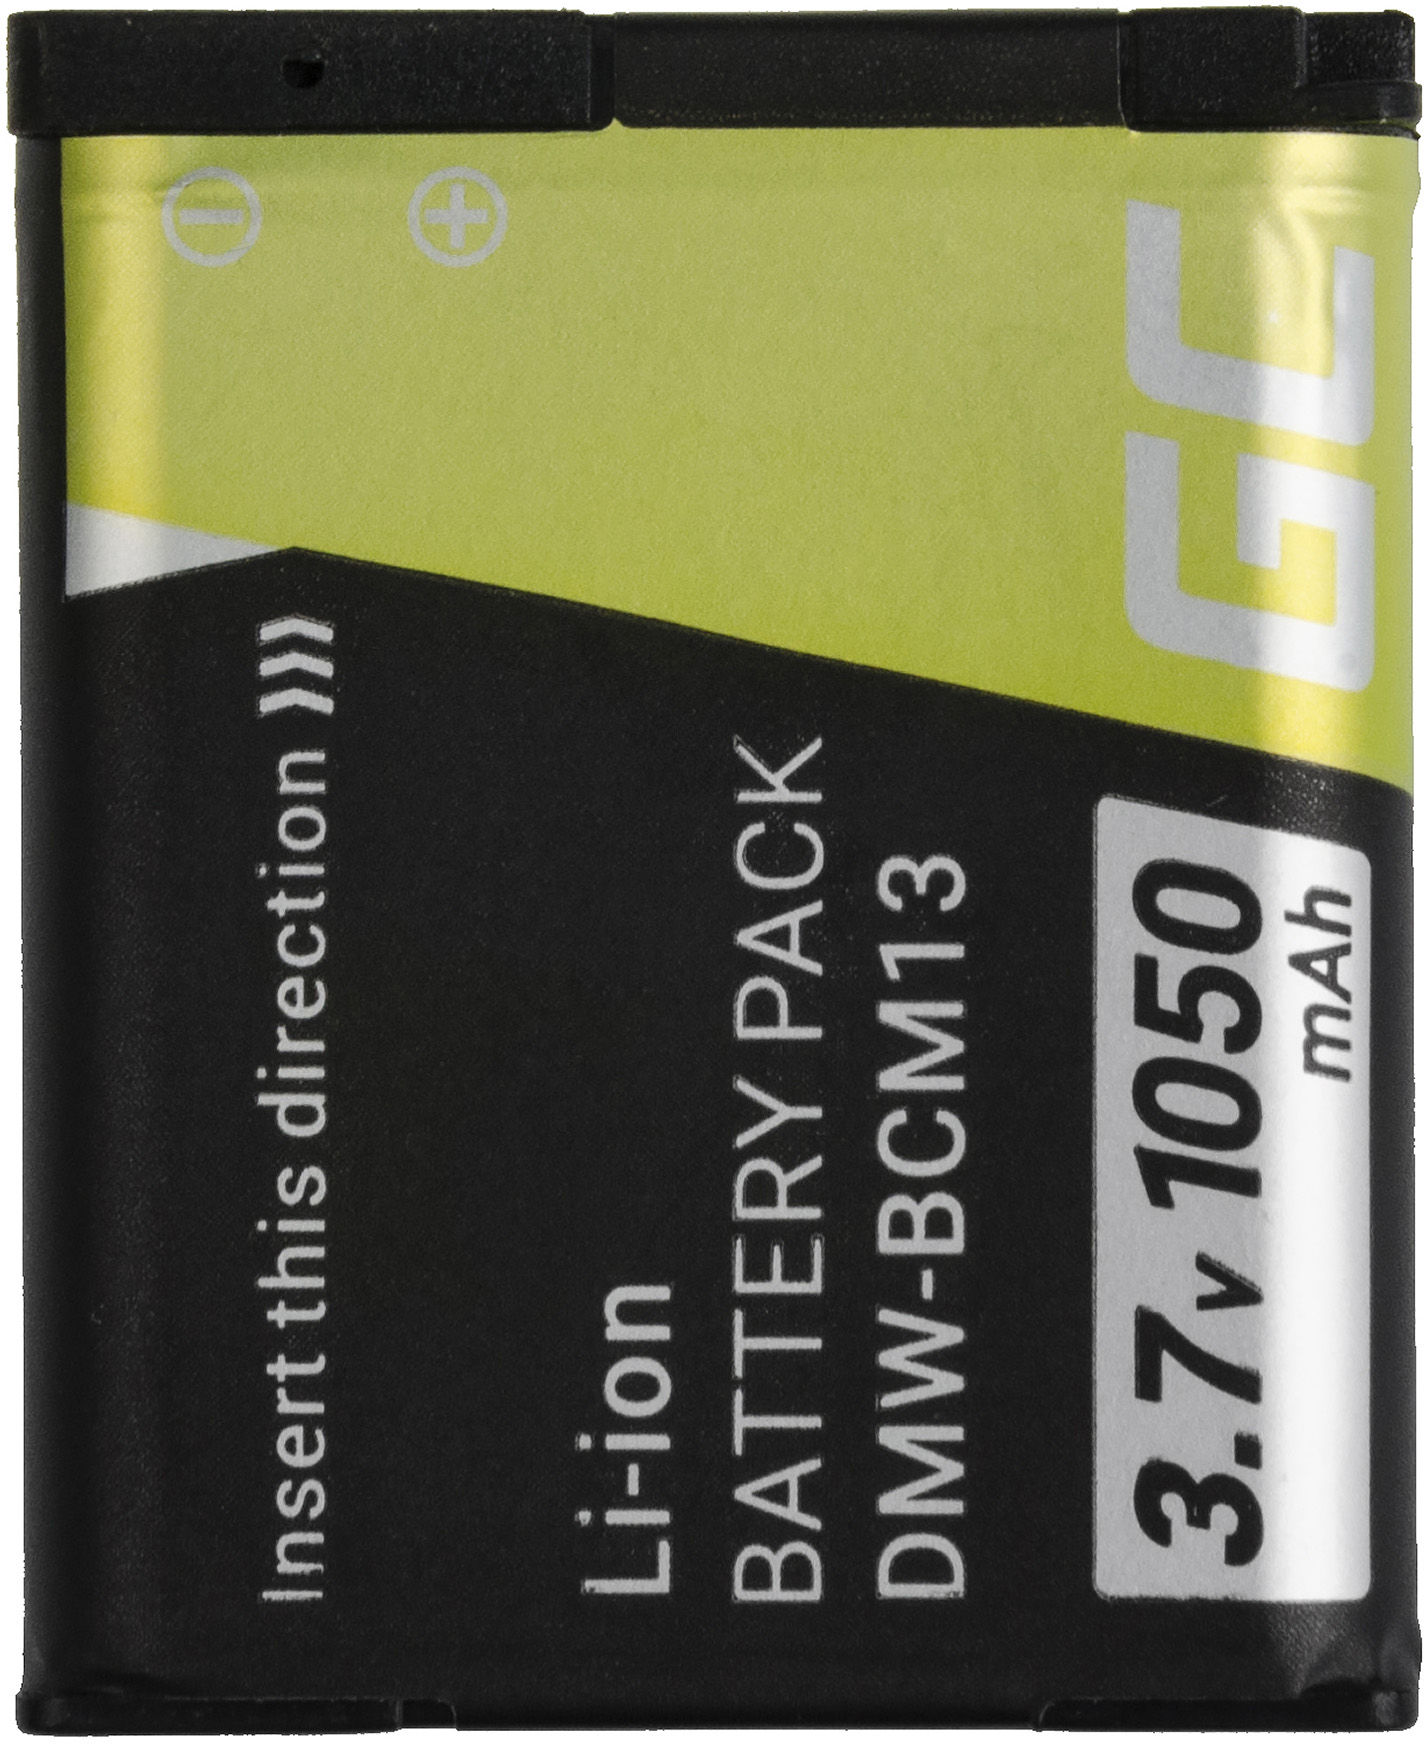 Akumulator Bateria Green Cell  DMW-BCM13E BCM13 do Panasonic Lumix DMC FT5 TS5 TZ40 TZ41 TZ55 TZ60 LZ40 ZS30, 3.7V 1050mAh